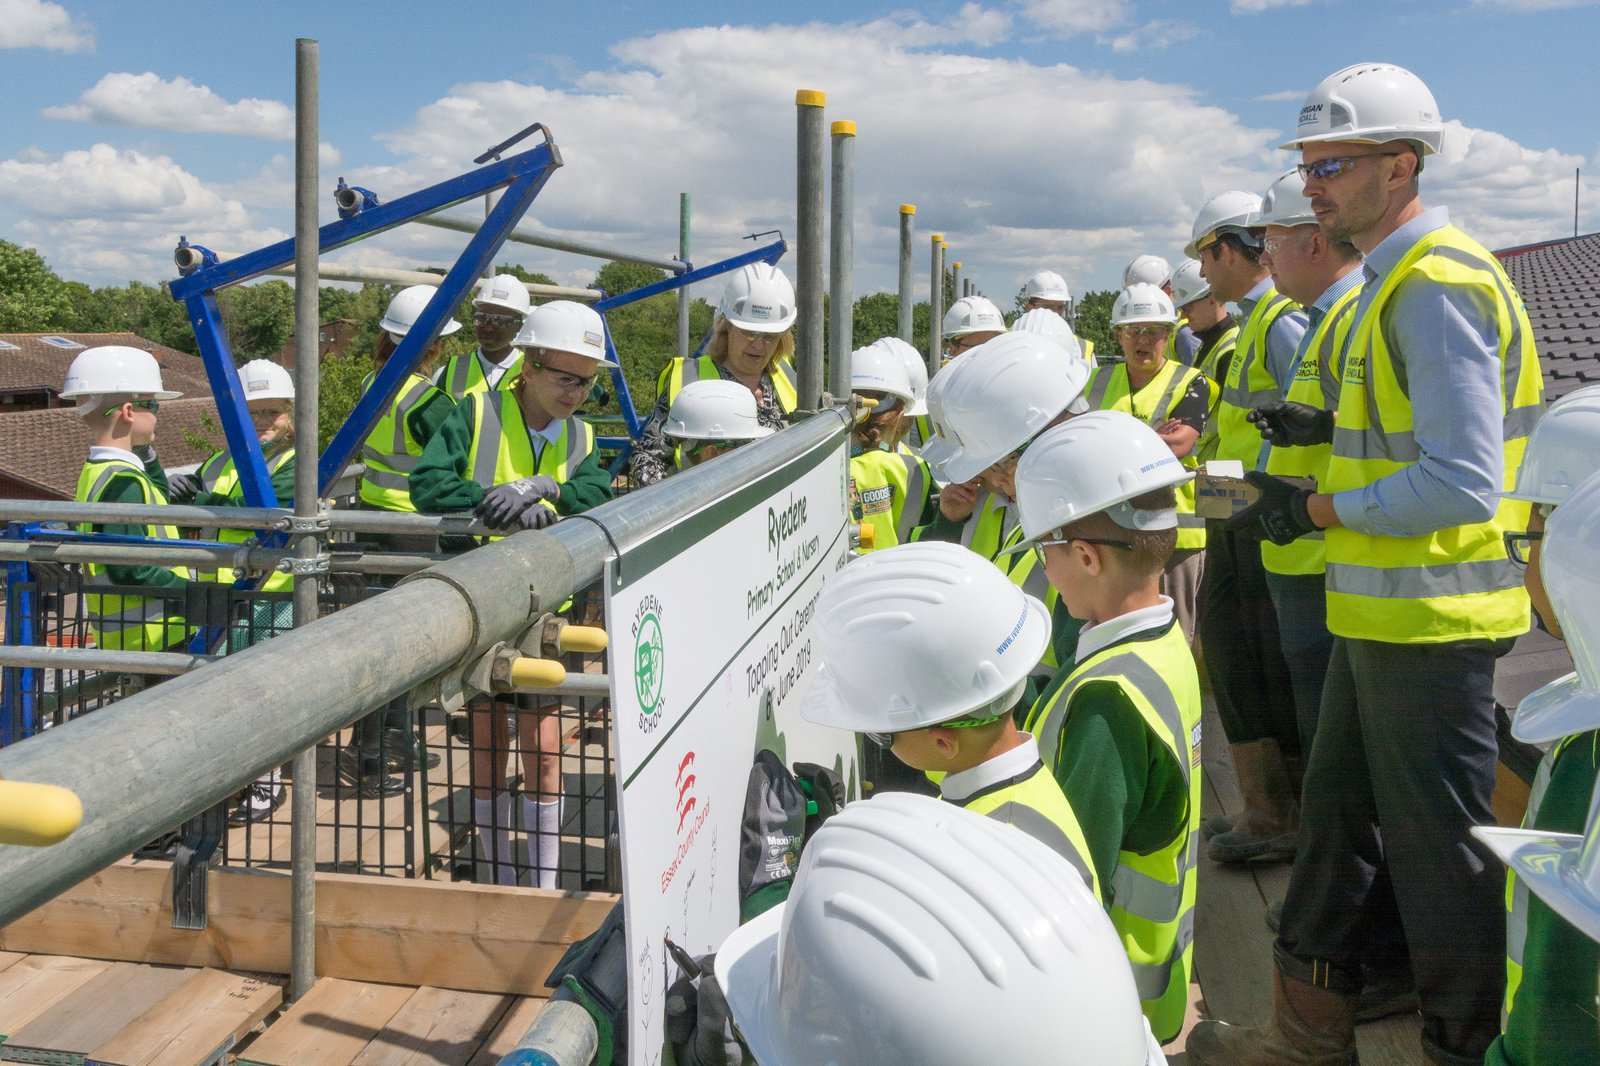 Pupils draw their self portraits on a board provided at the Ryedene School topping out ceremony